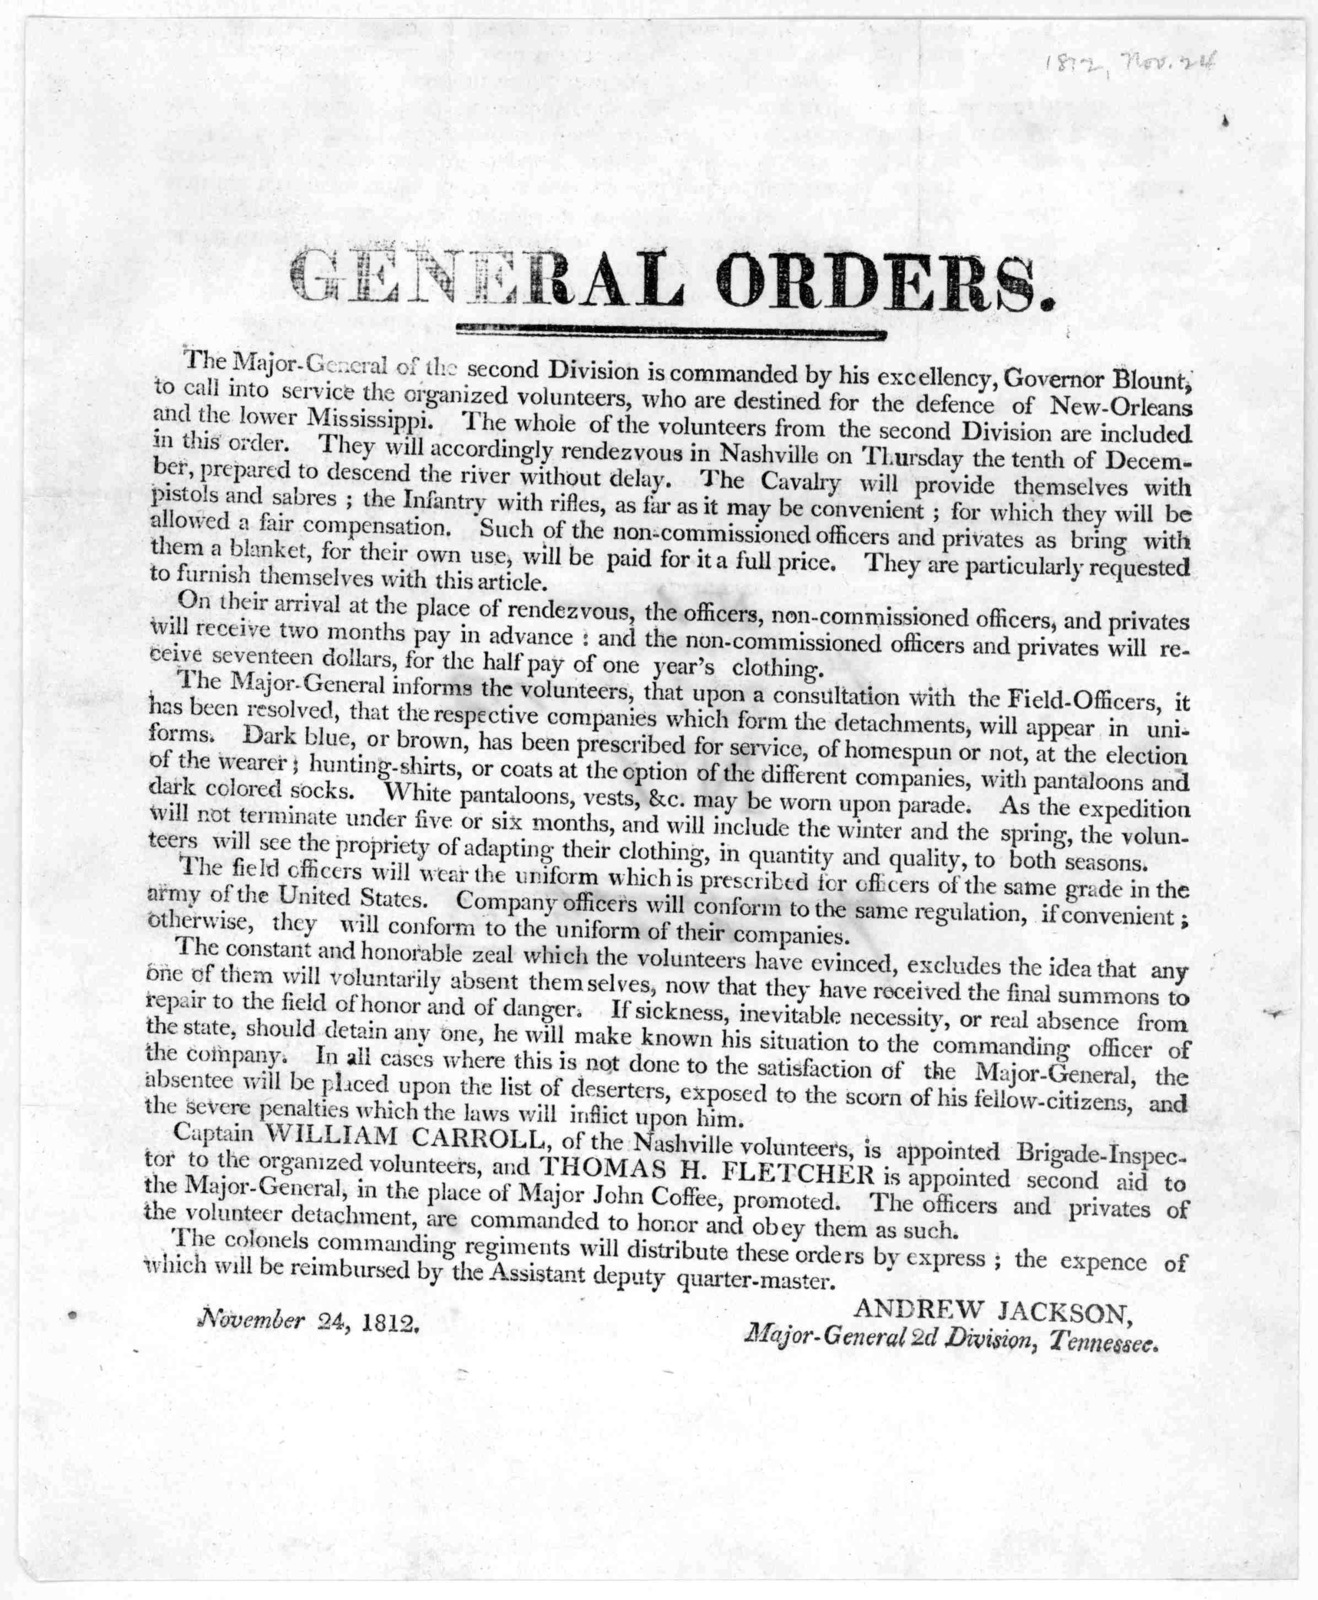 General orders .... Andrew Jackson. Major-General 2d Division, Tennessee. November 24, 1812.